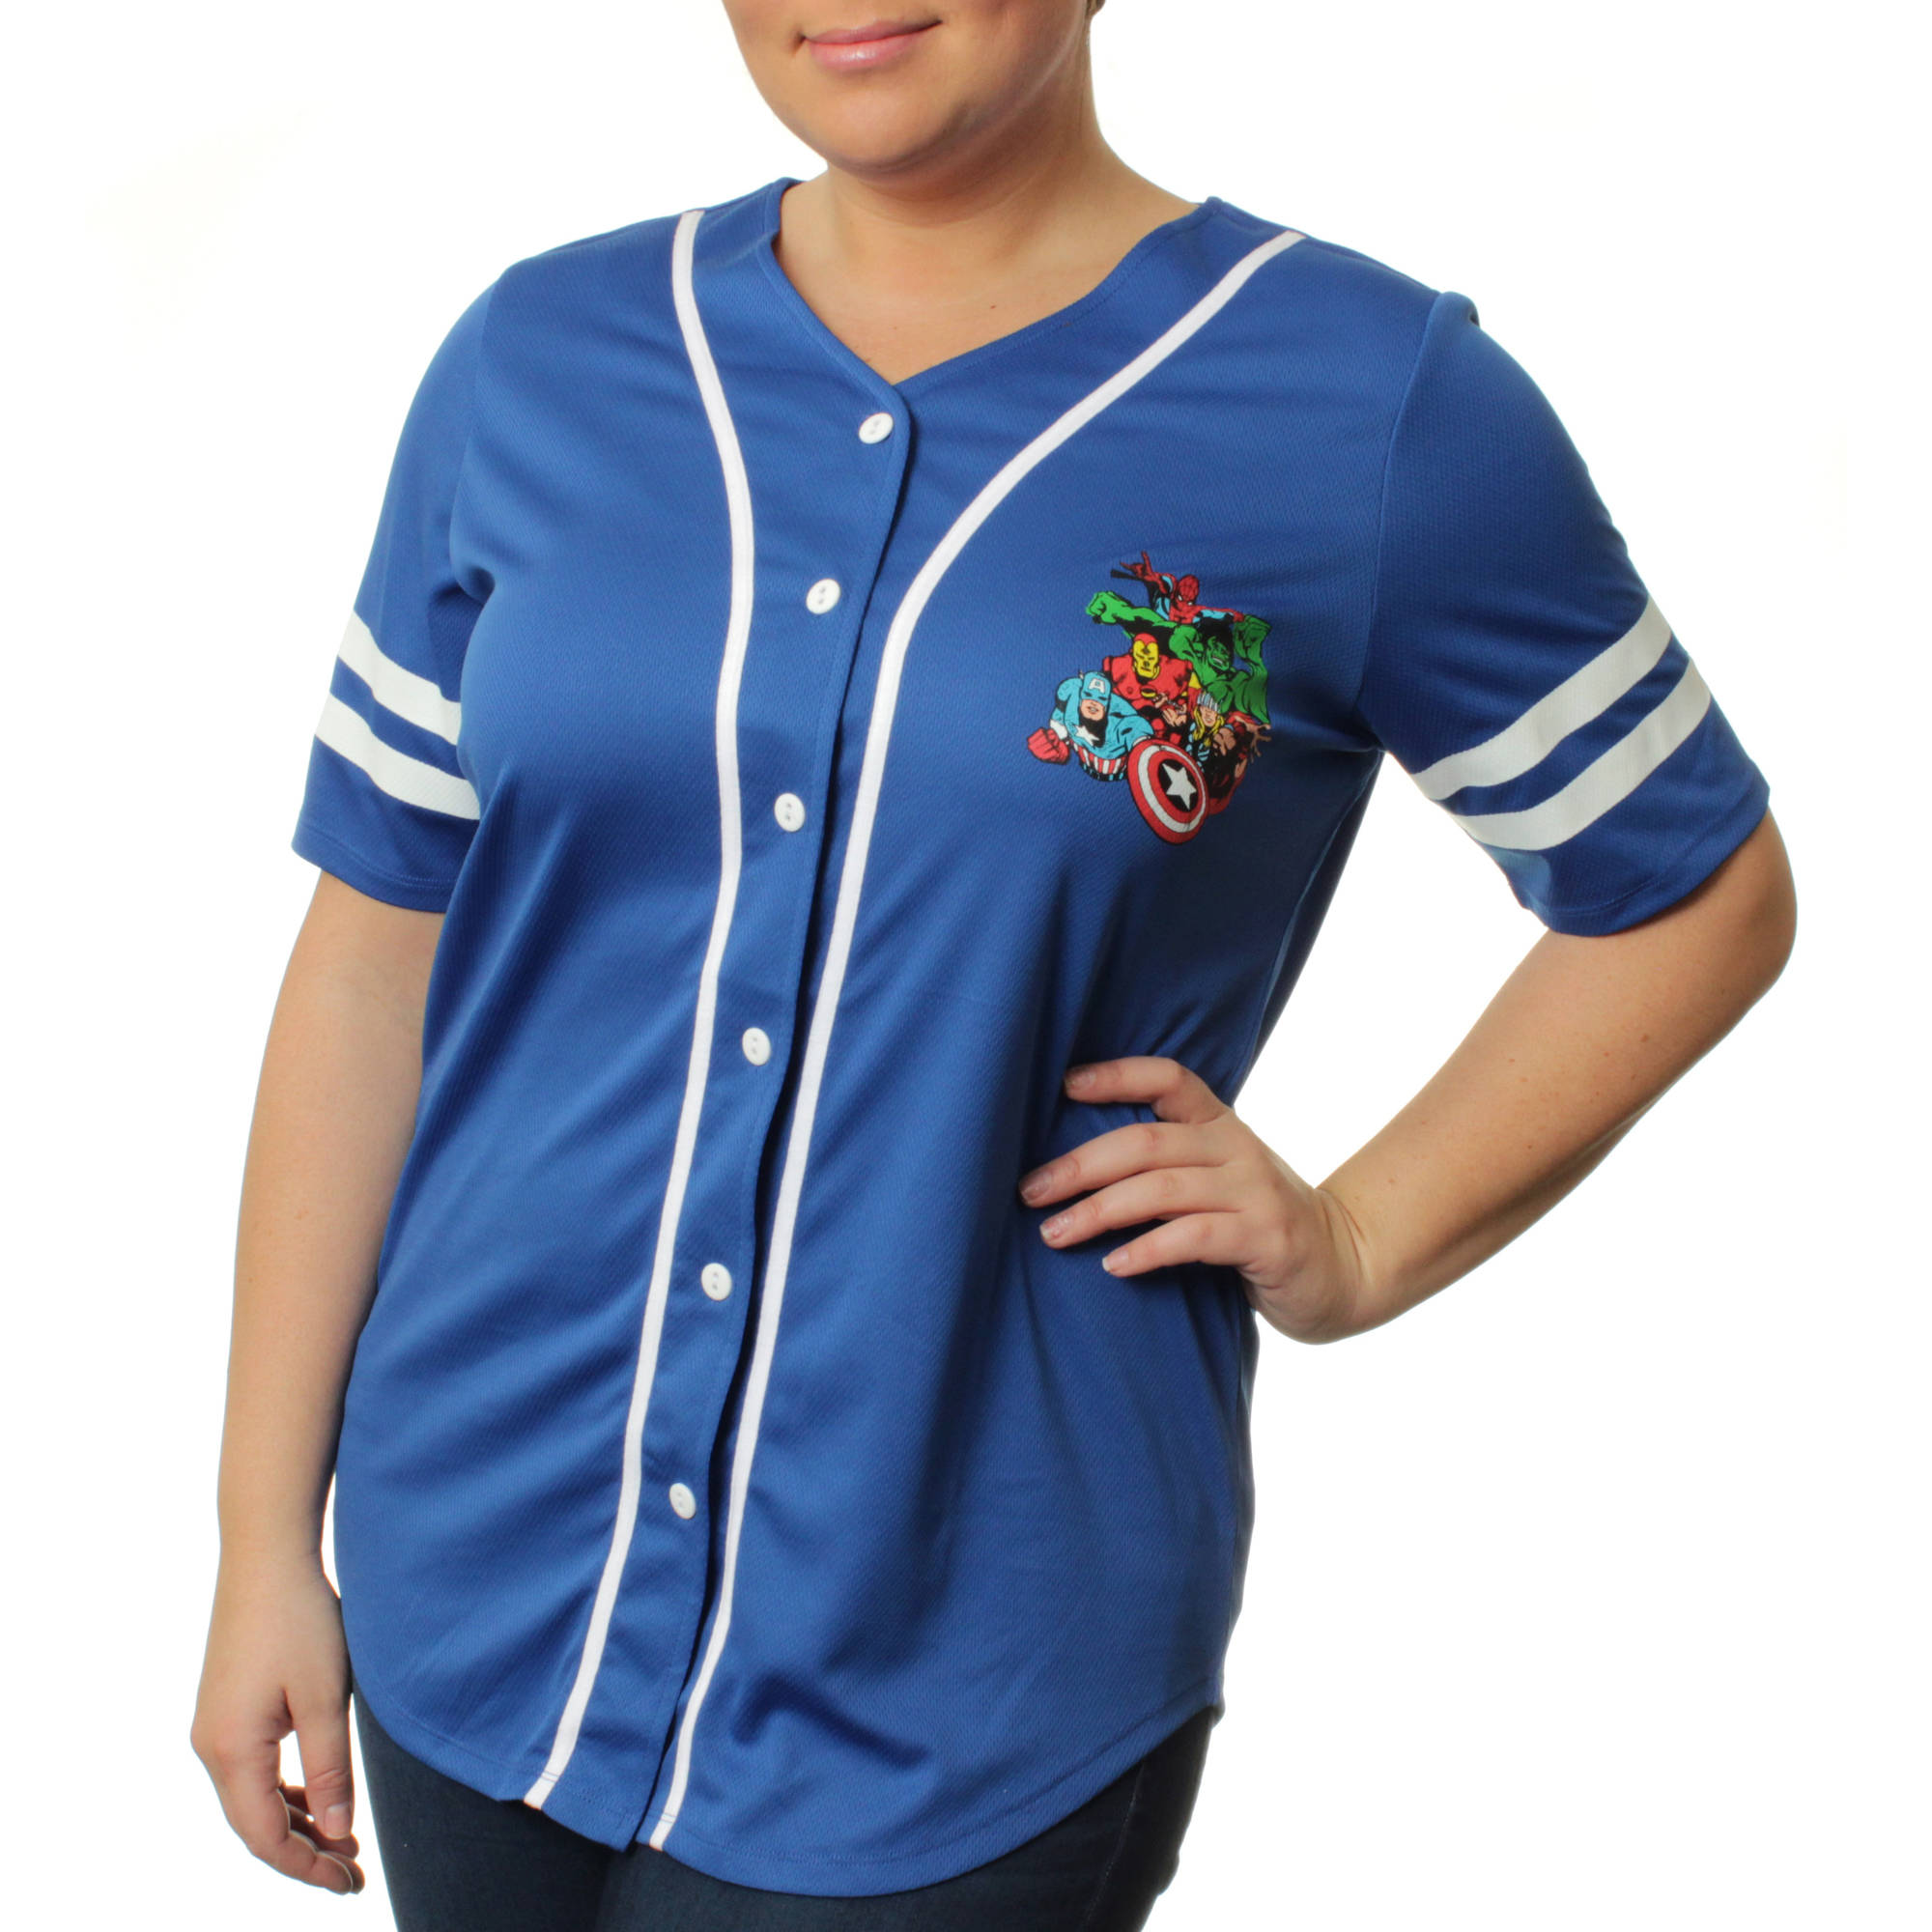 Marvel Women's Plus Button Front Athletic Mesh Baseball Shirt